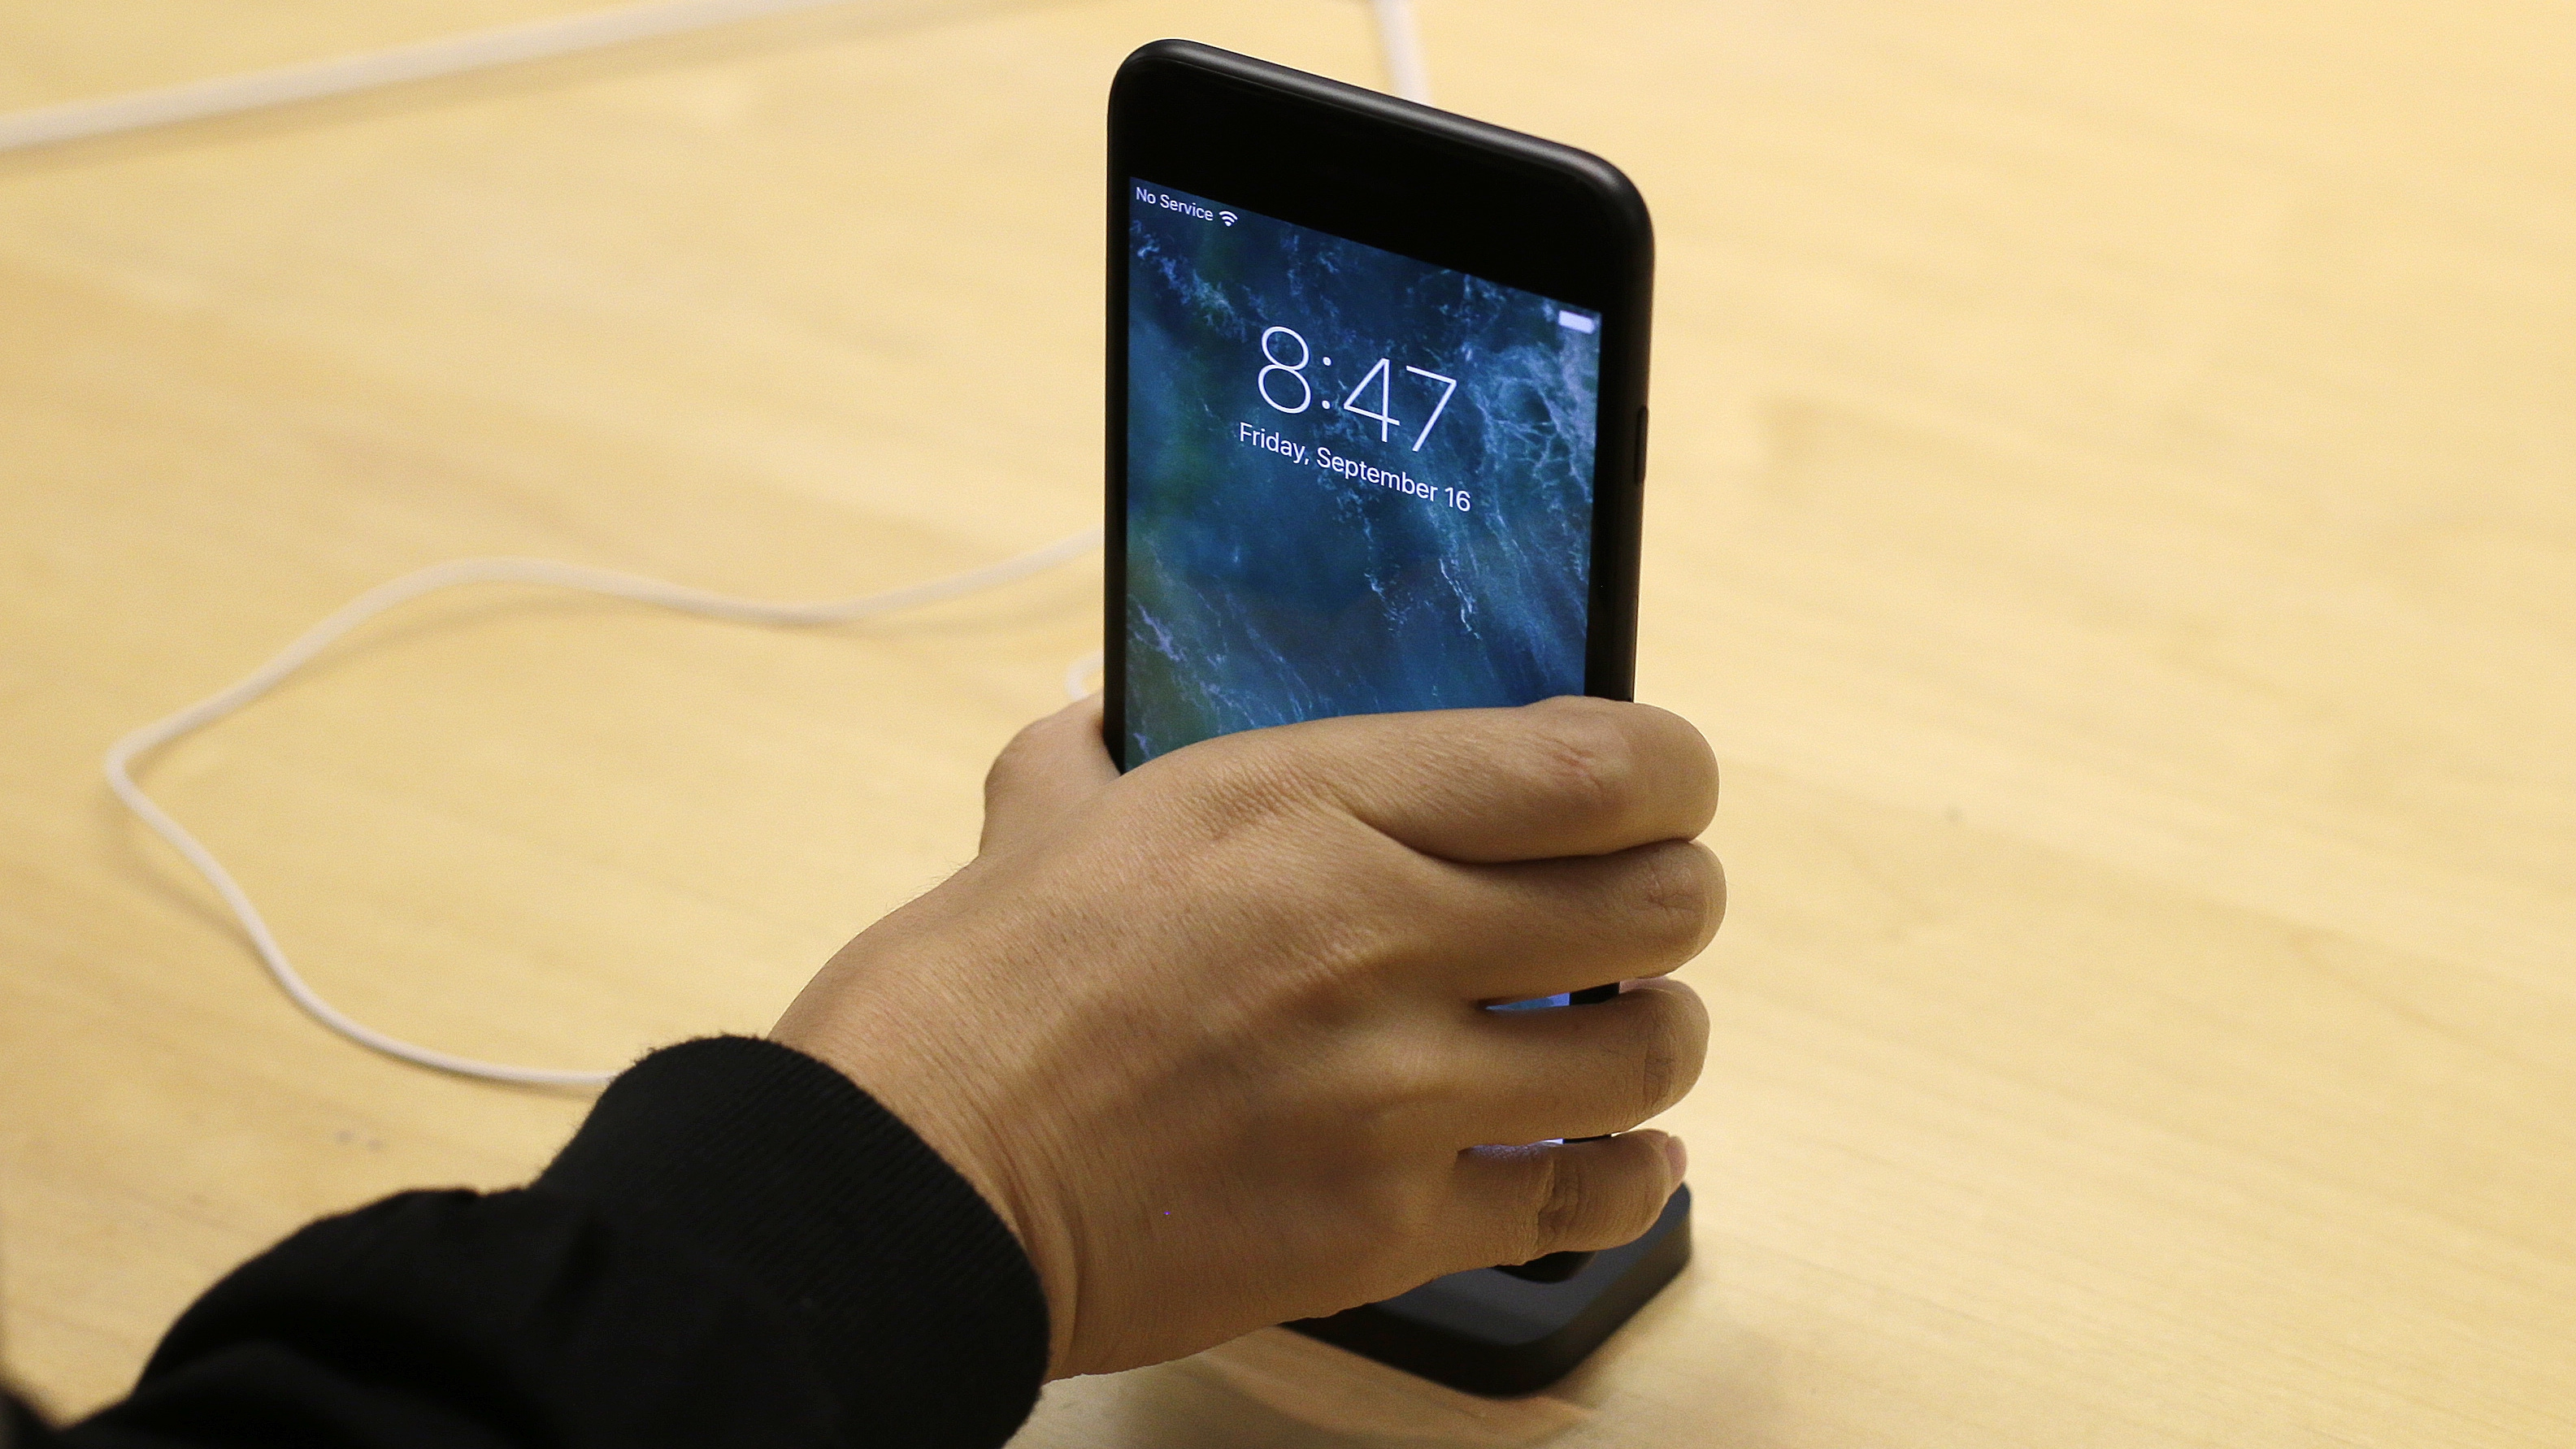 A customer checks out the new iPhone 7 Plus at the Apple Store on Michigan Avenue, Friday, Sept. 16, 2016, in Chicago. (AP Photo/Kiichiro Sato)